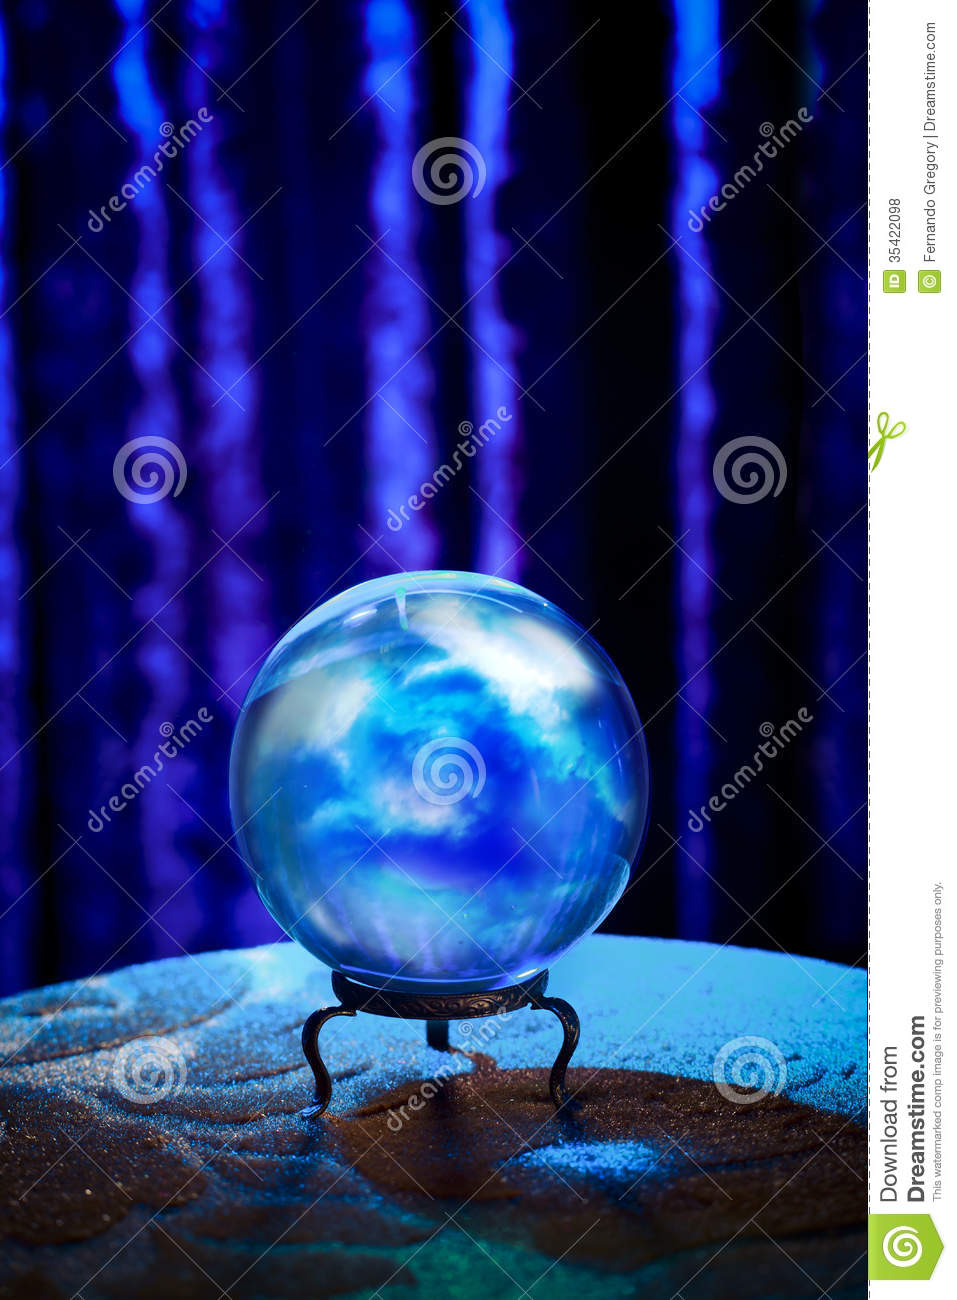 Fortune Teller's Crystal Ball With Dramatic Lighting Stock